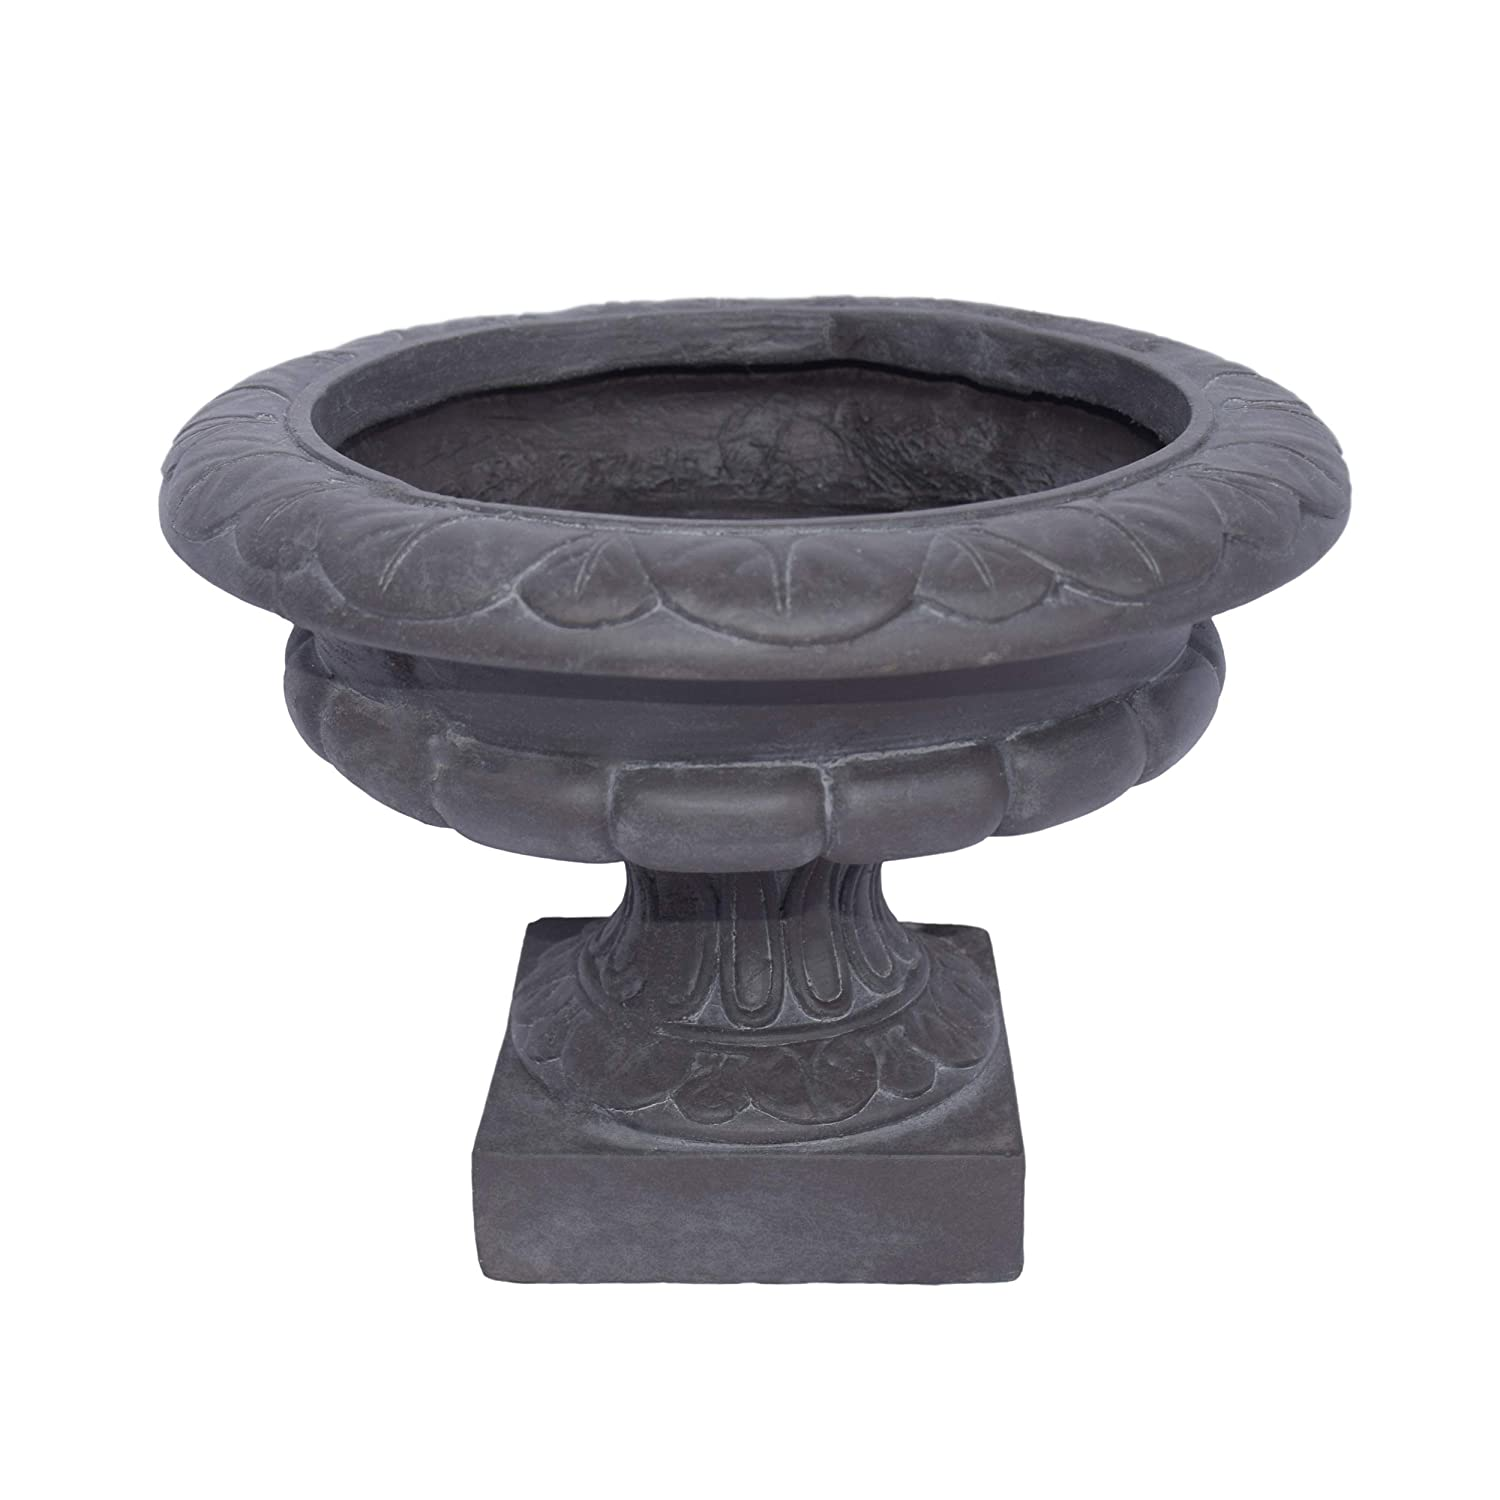 Great Deal Furniture Breenda Chalice Garden Urn Planter, Roman, Botanical, Antique Gray Lightweight Concrete